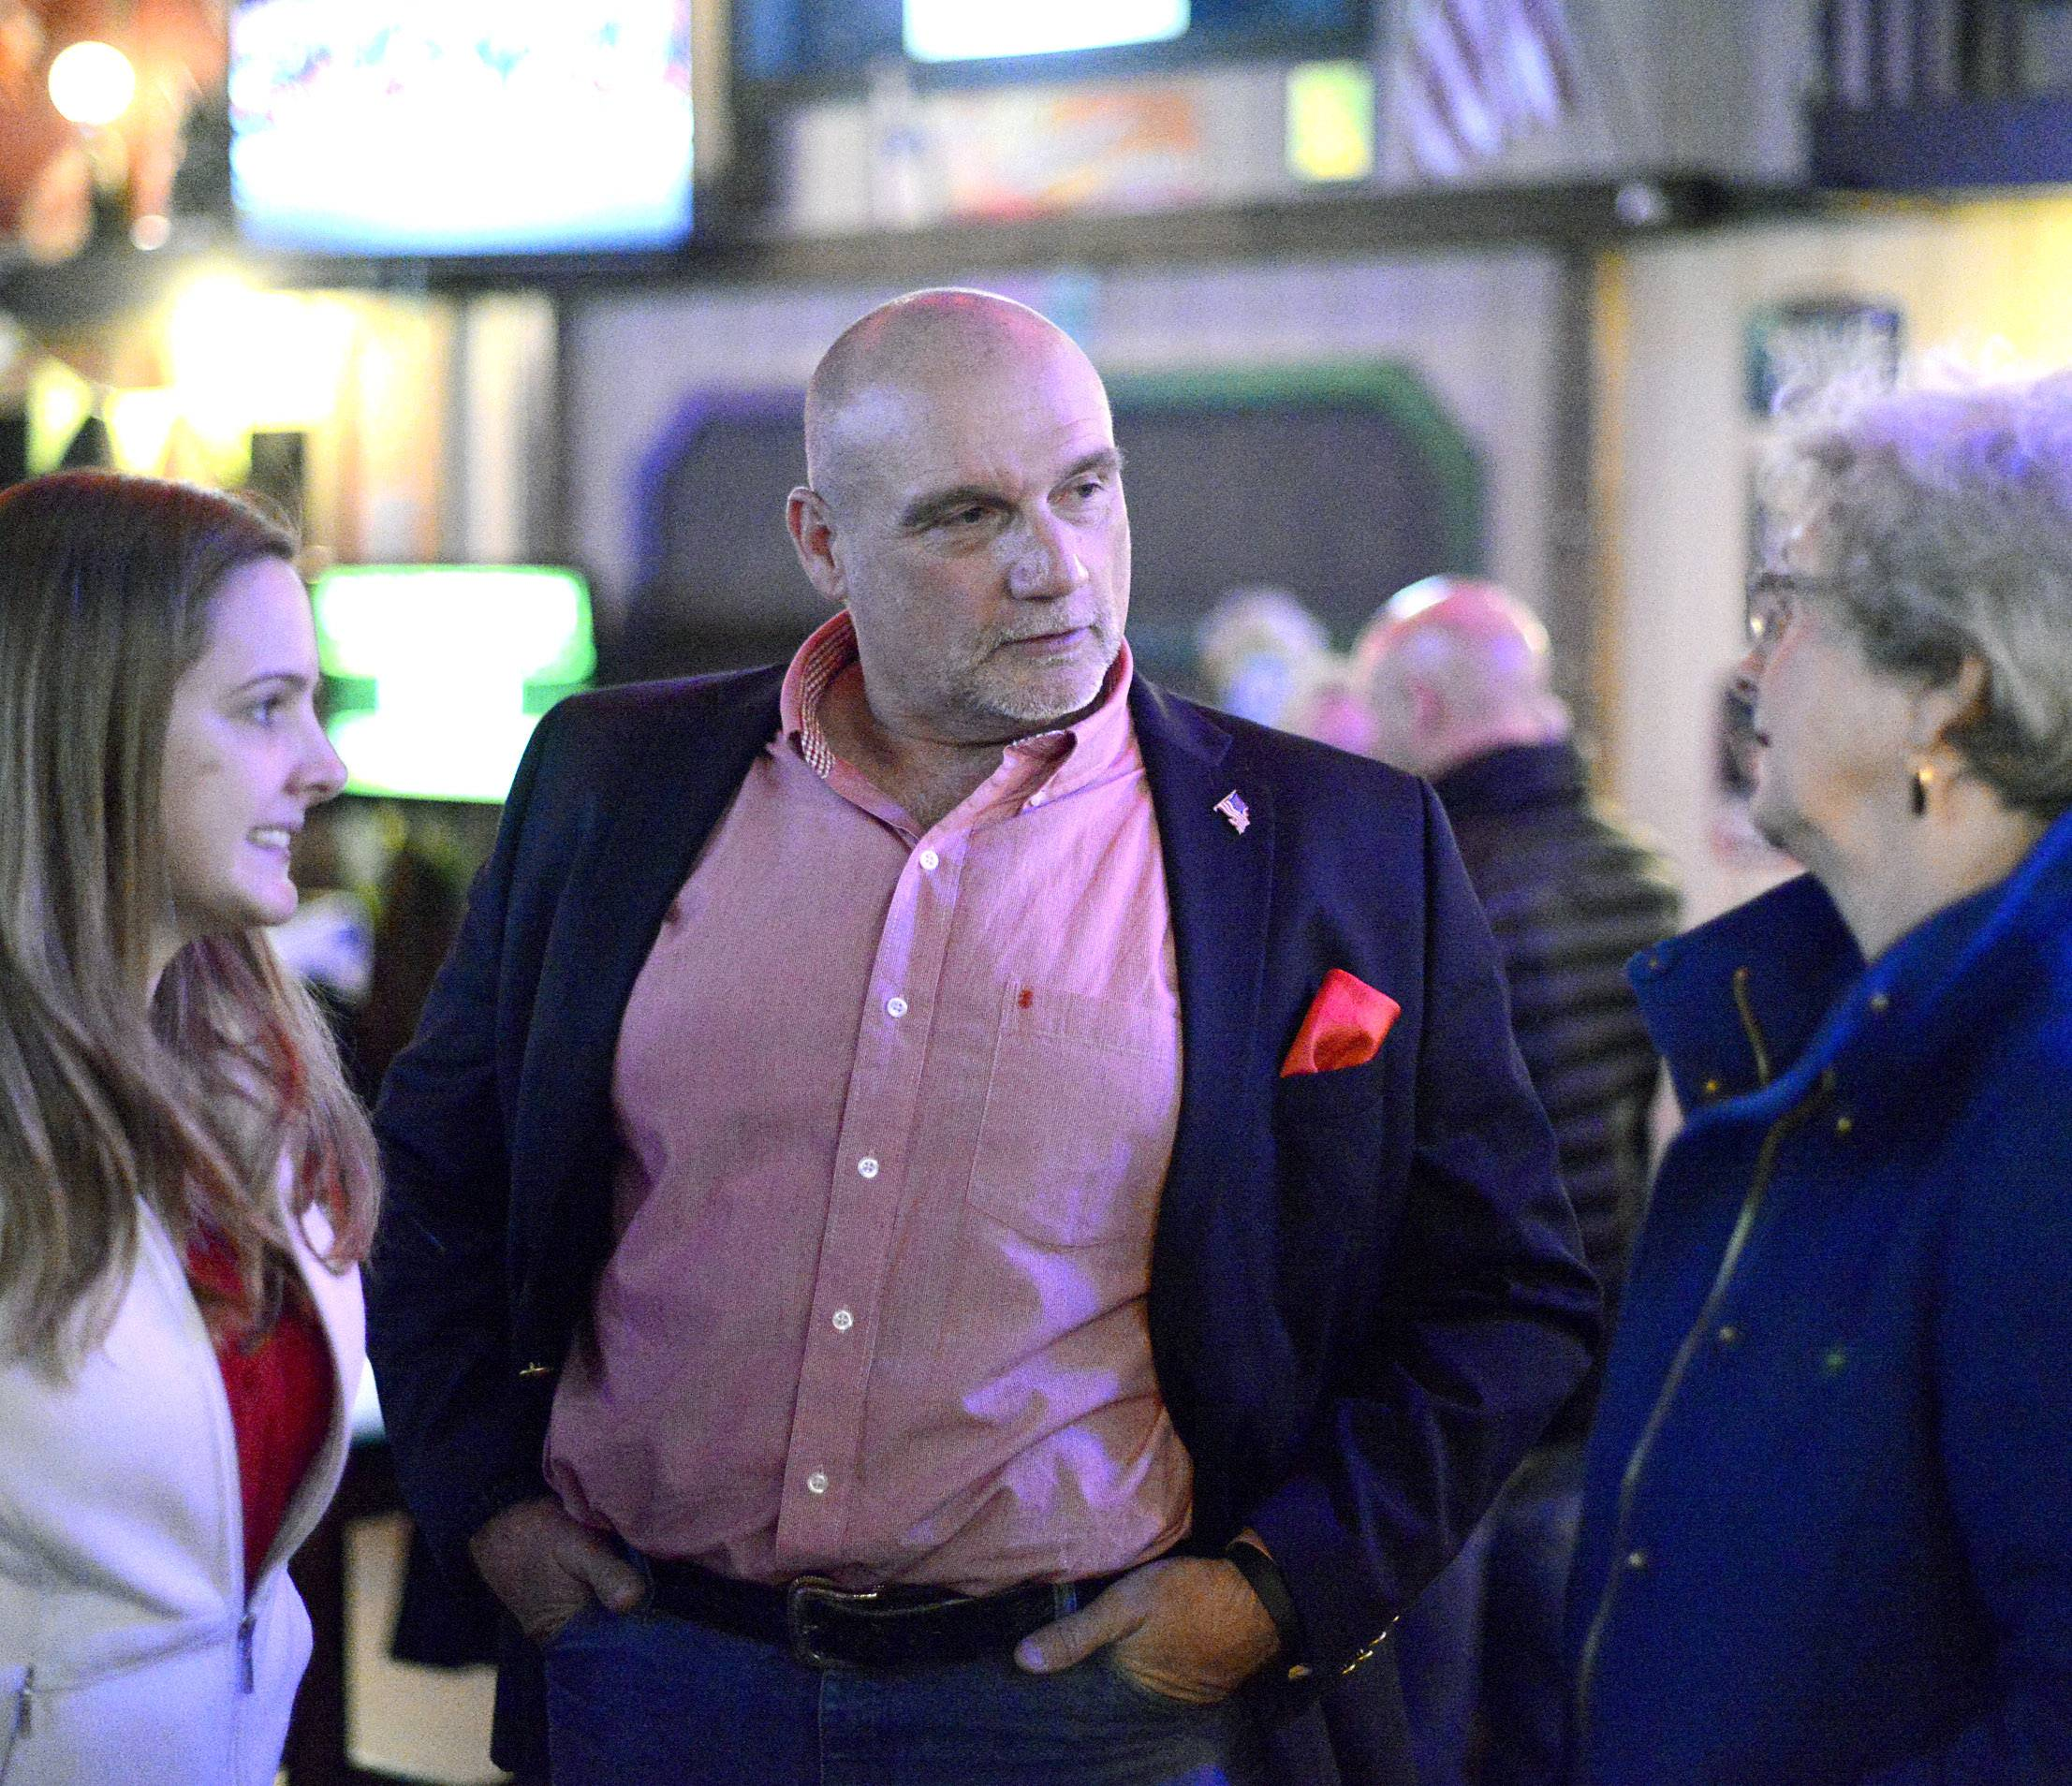 Kane County Sheriff candidate Lt. Kevin Williams, center, chats with Kane County Recorder Sandy Wegman, right, and her daughter Penny Wegman, both of Elgin at his election night gathering in St. Charles.